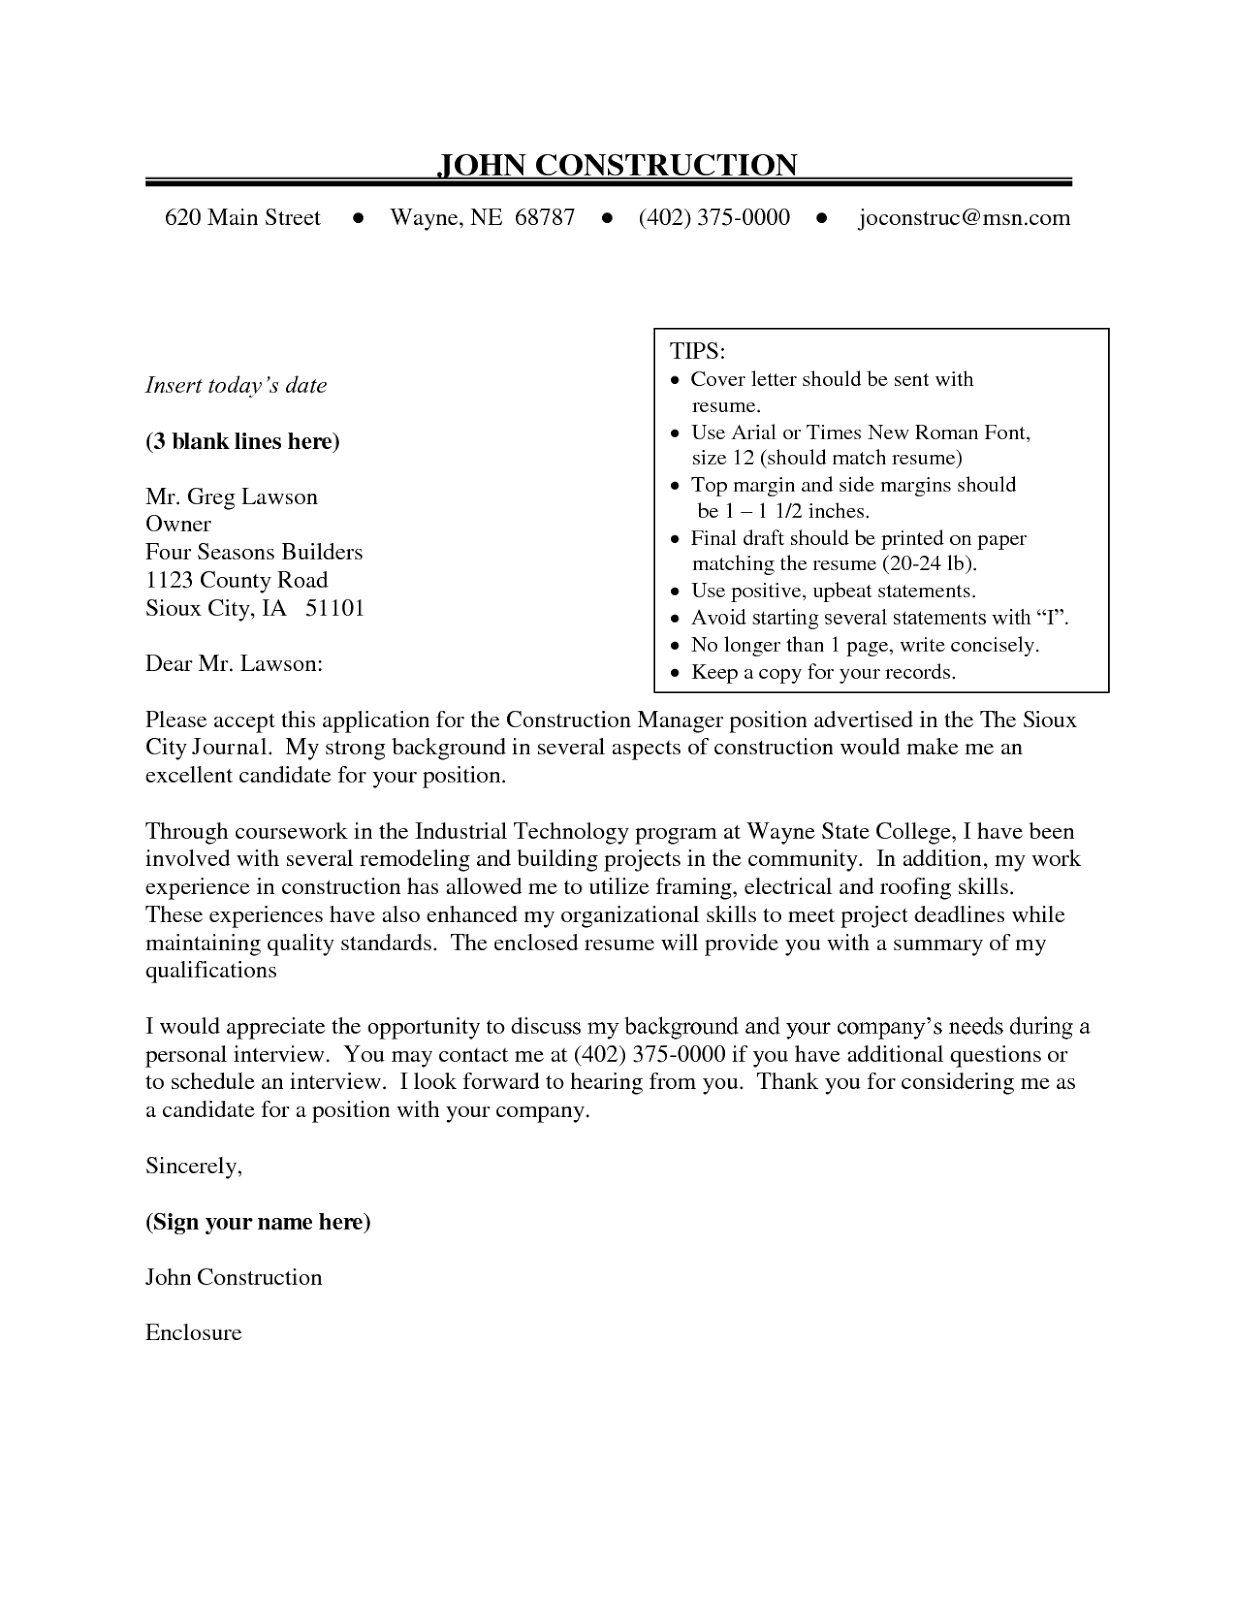 email resume cover letter sample resume cover letter format ...